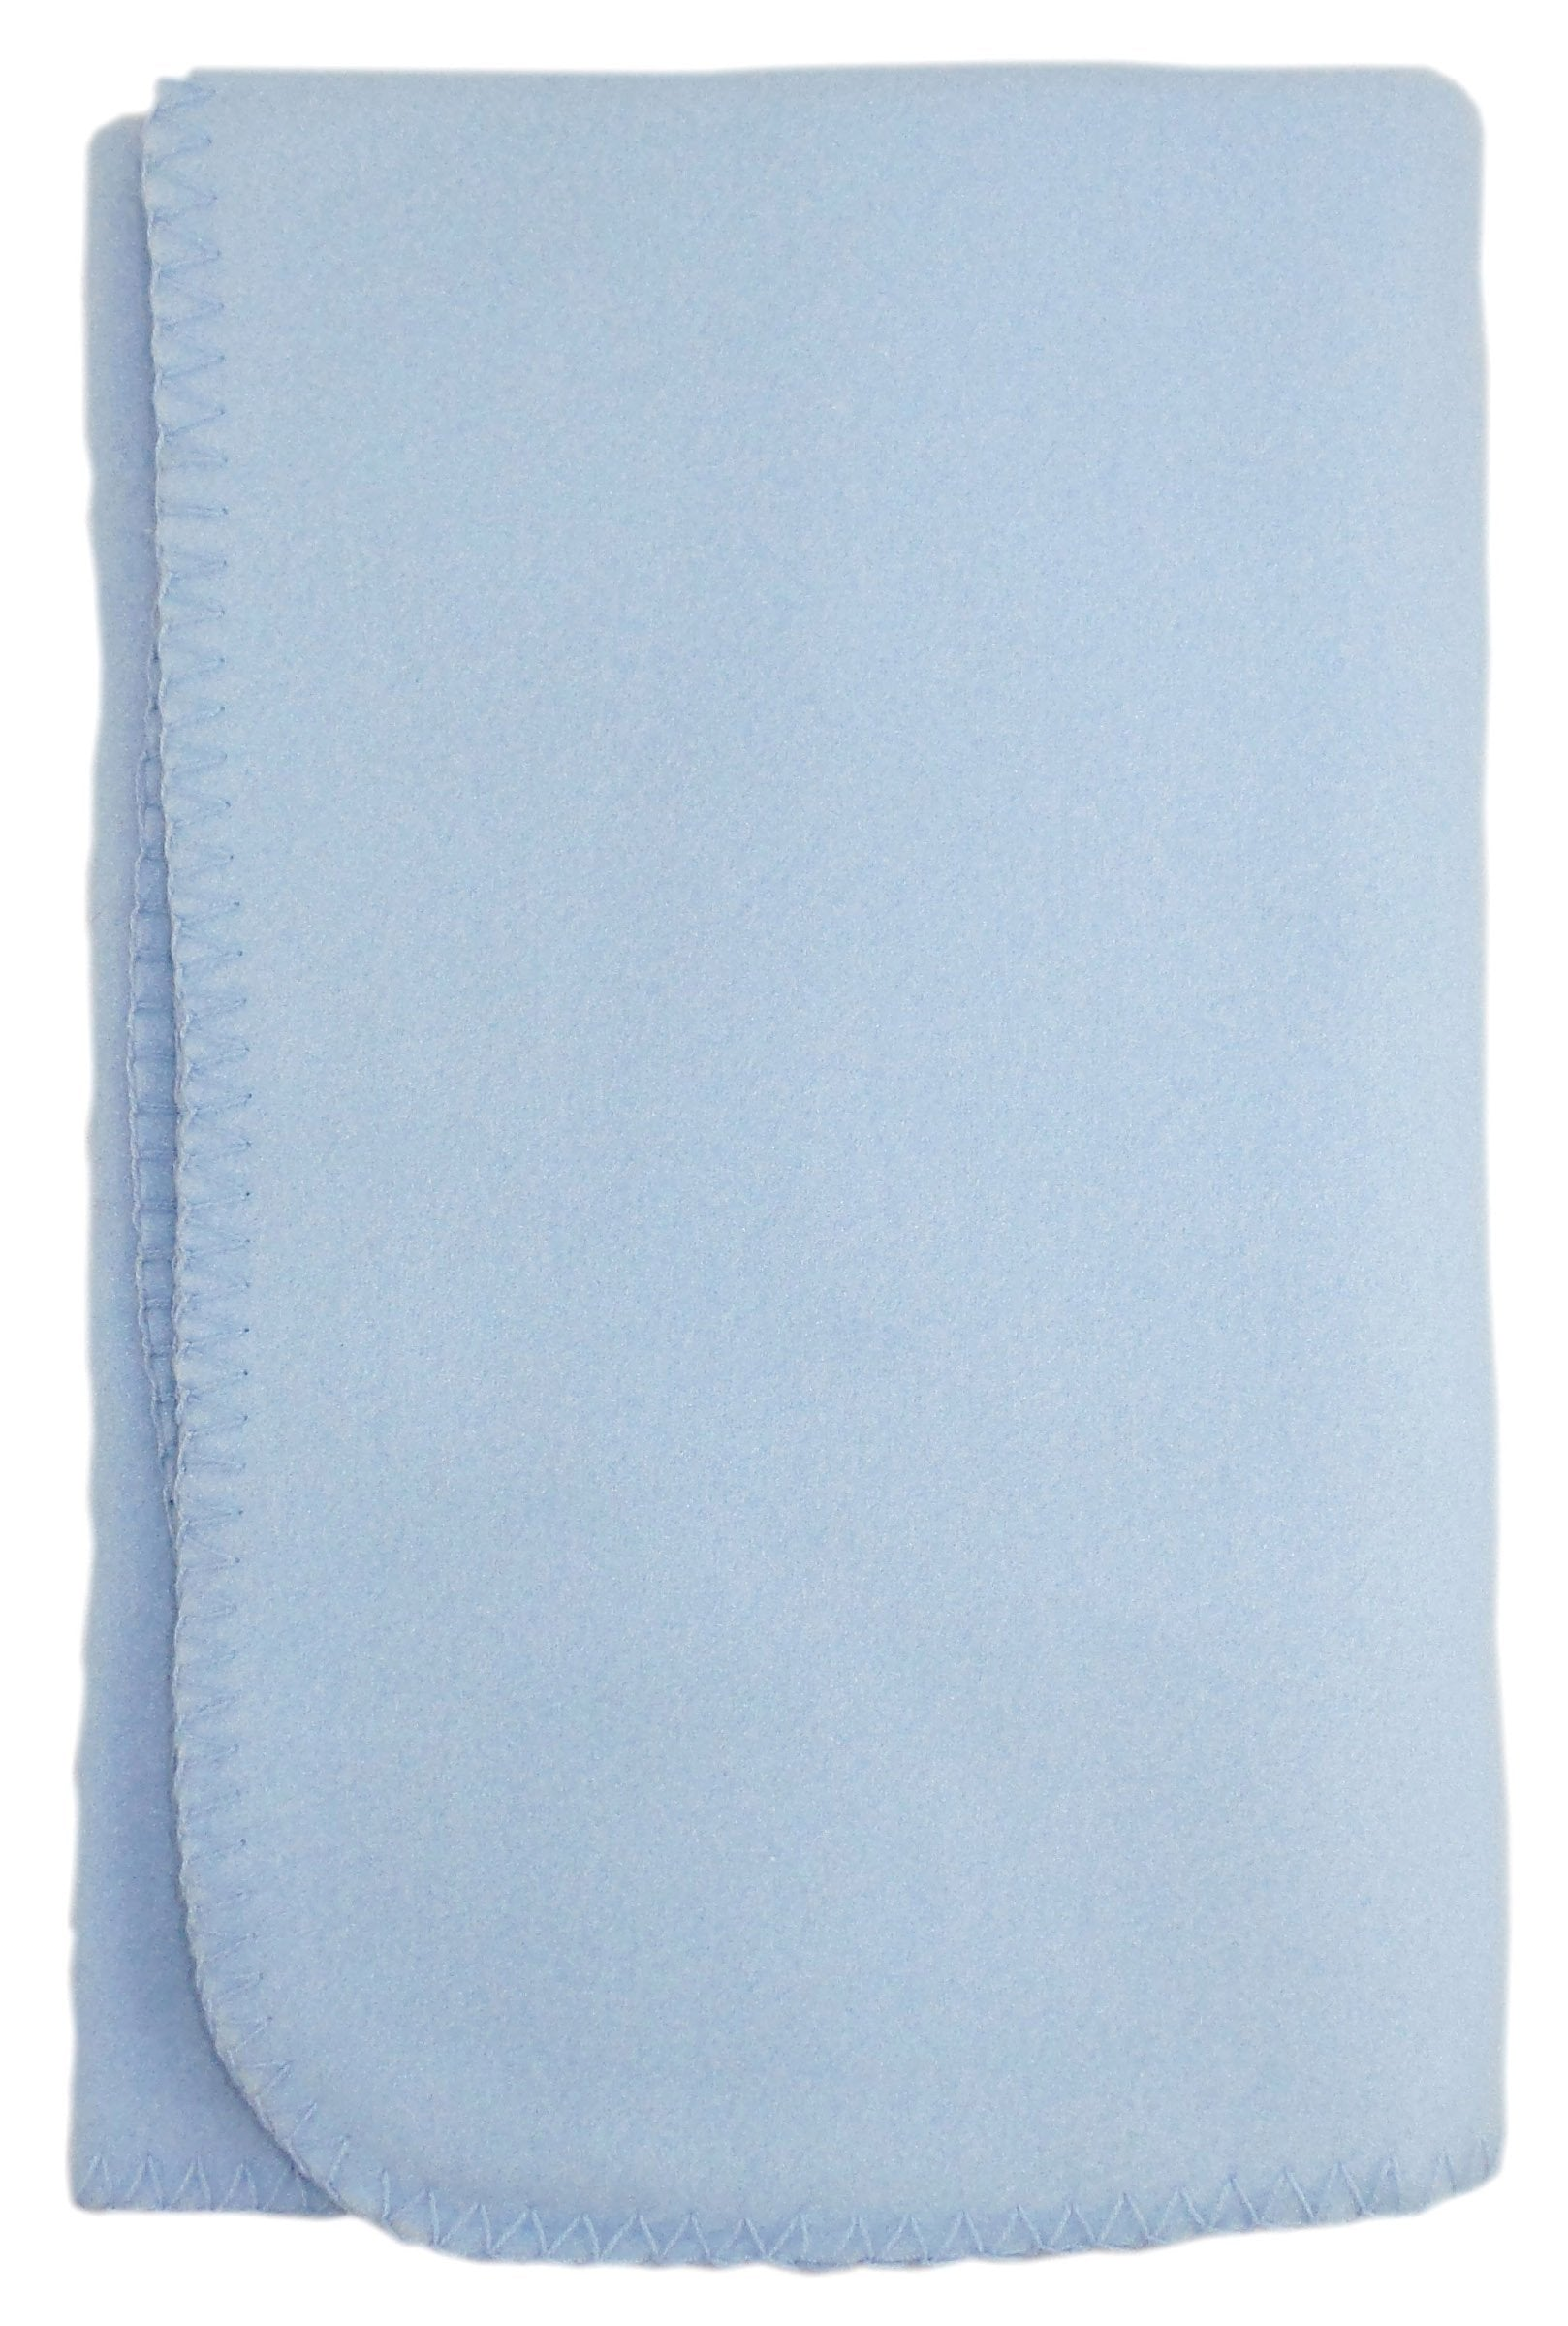 Bambini Blank Blue Polarfleece Blanket - Baby World Inc